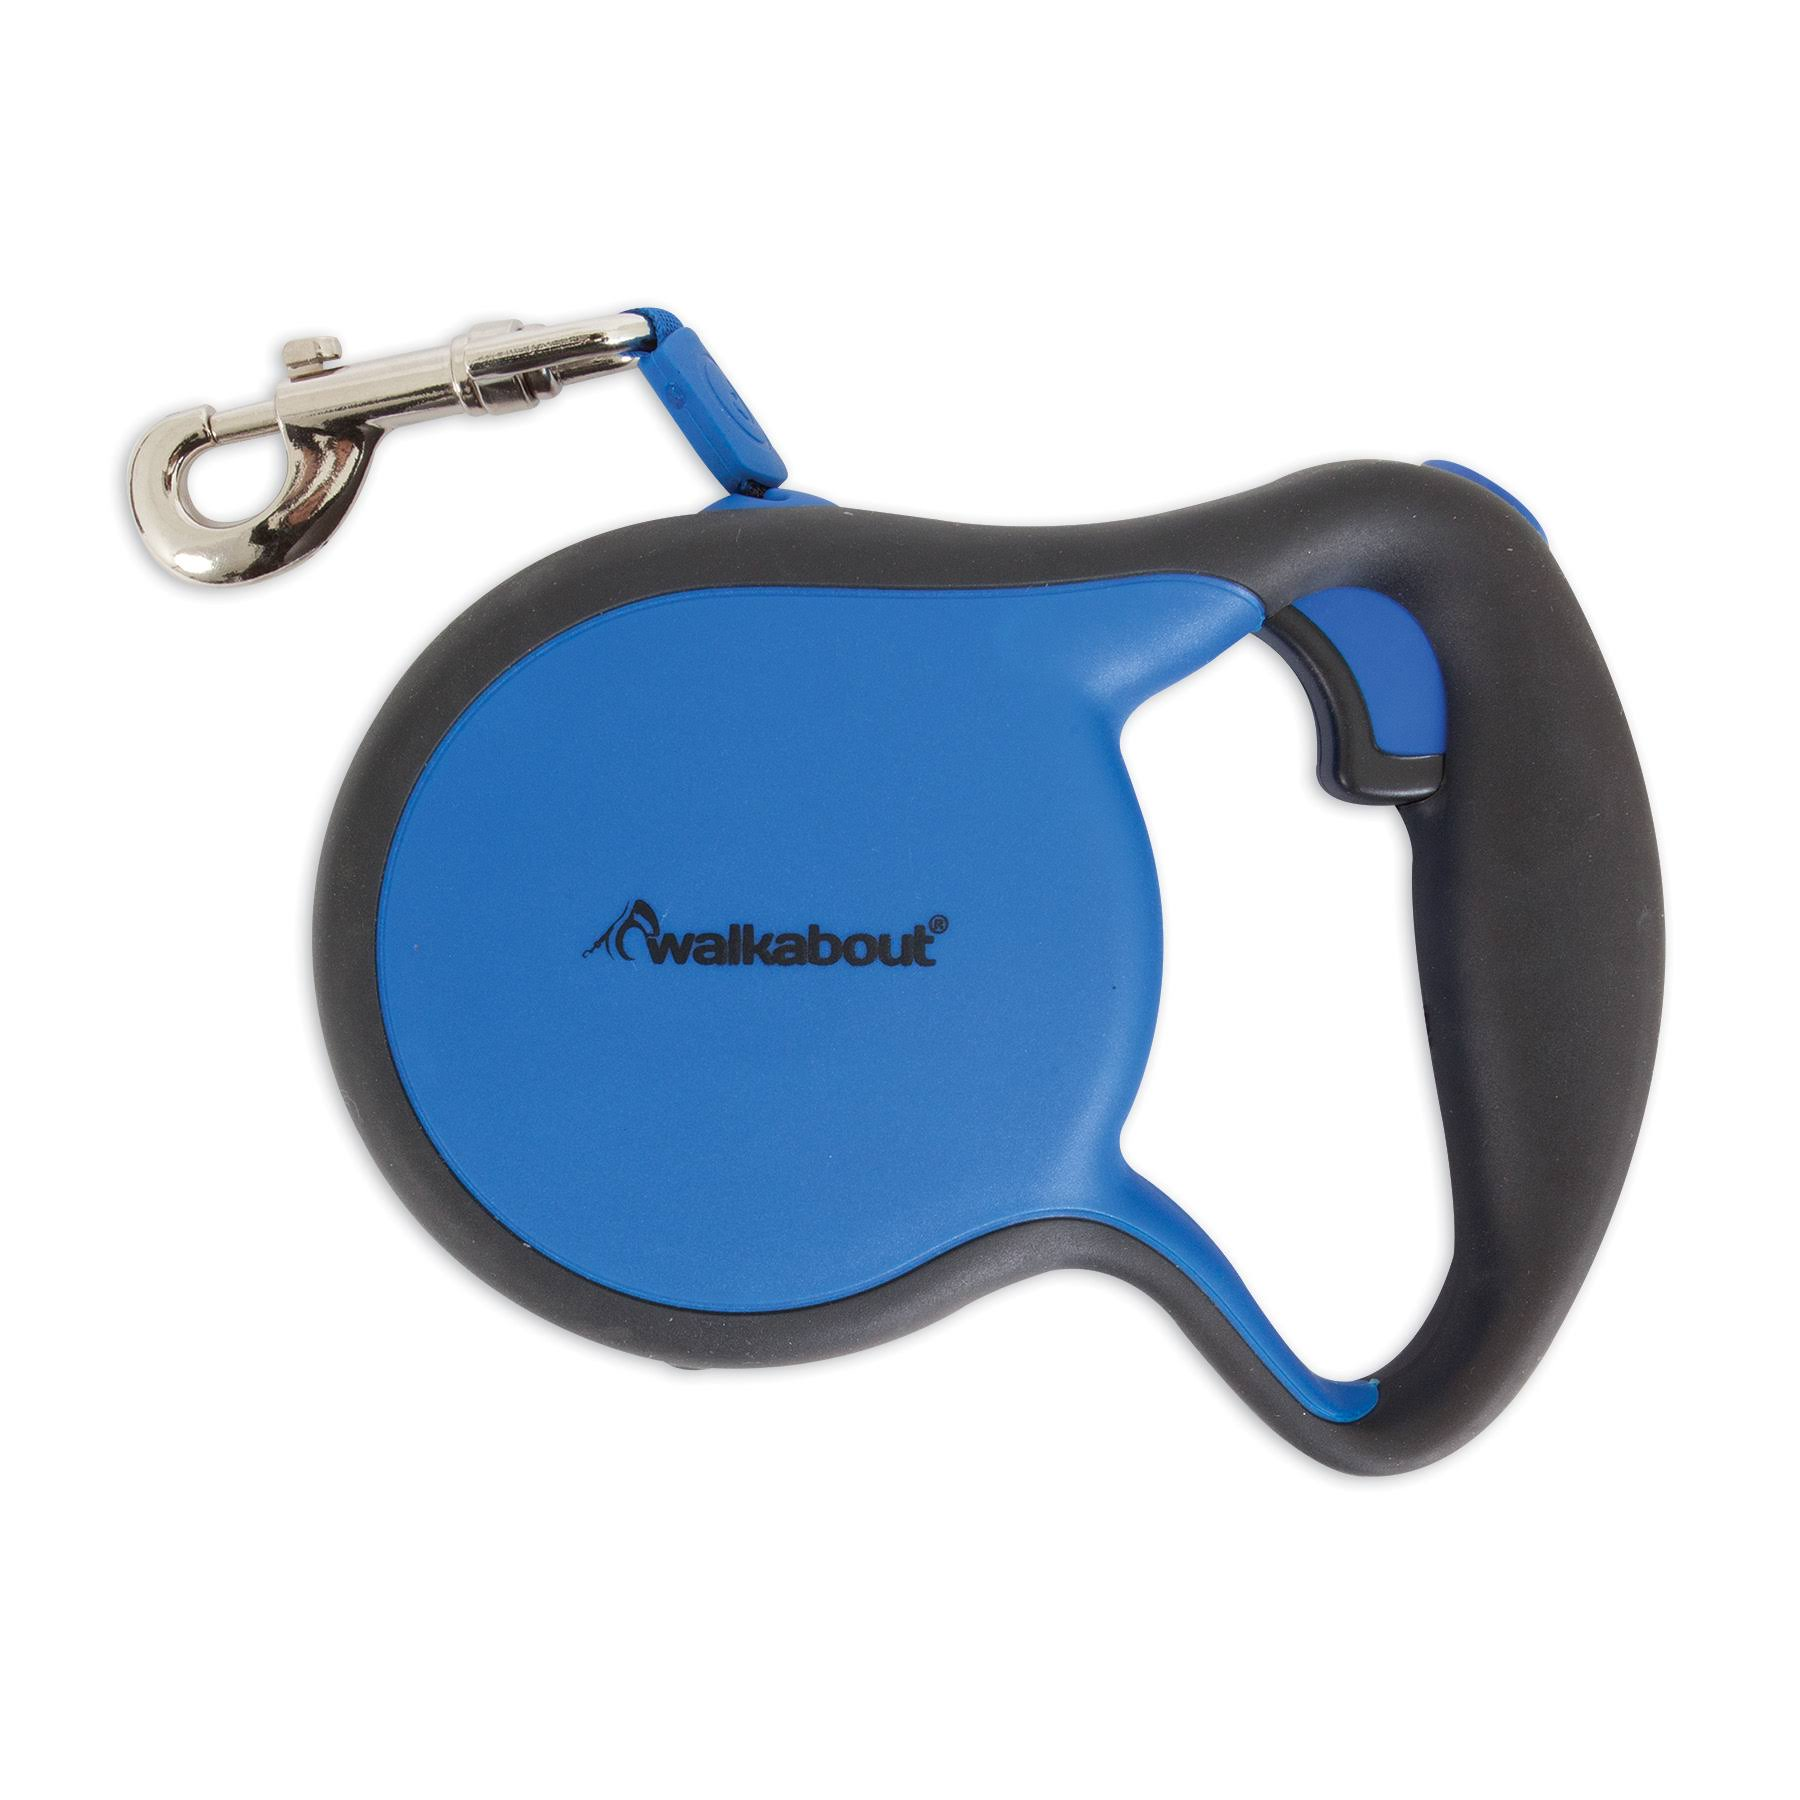 Petmate Walkabout Retractable Leash, Medium/Blue